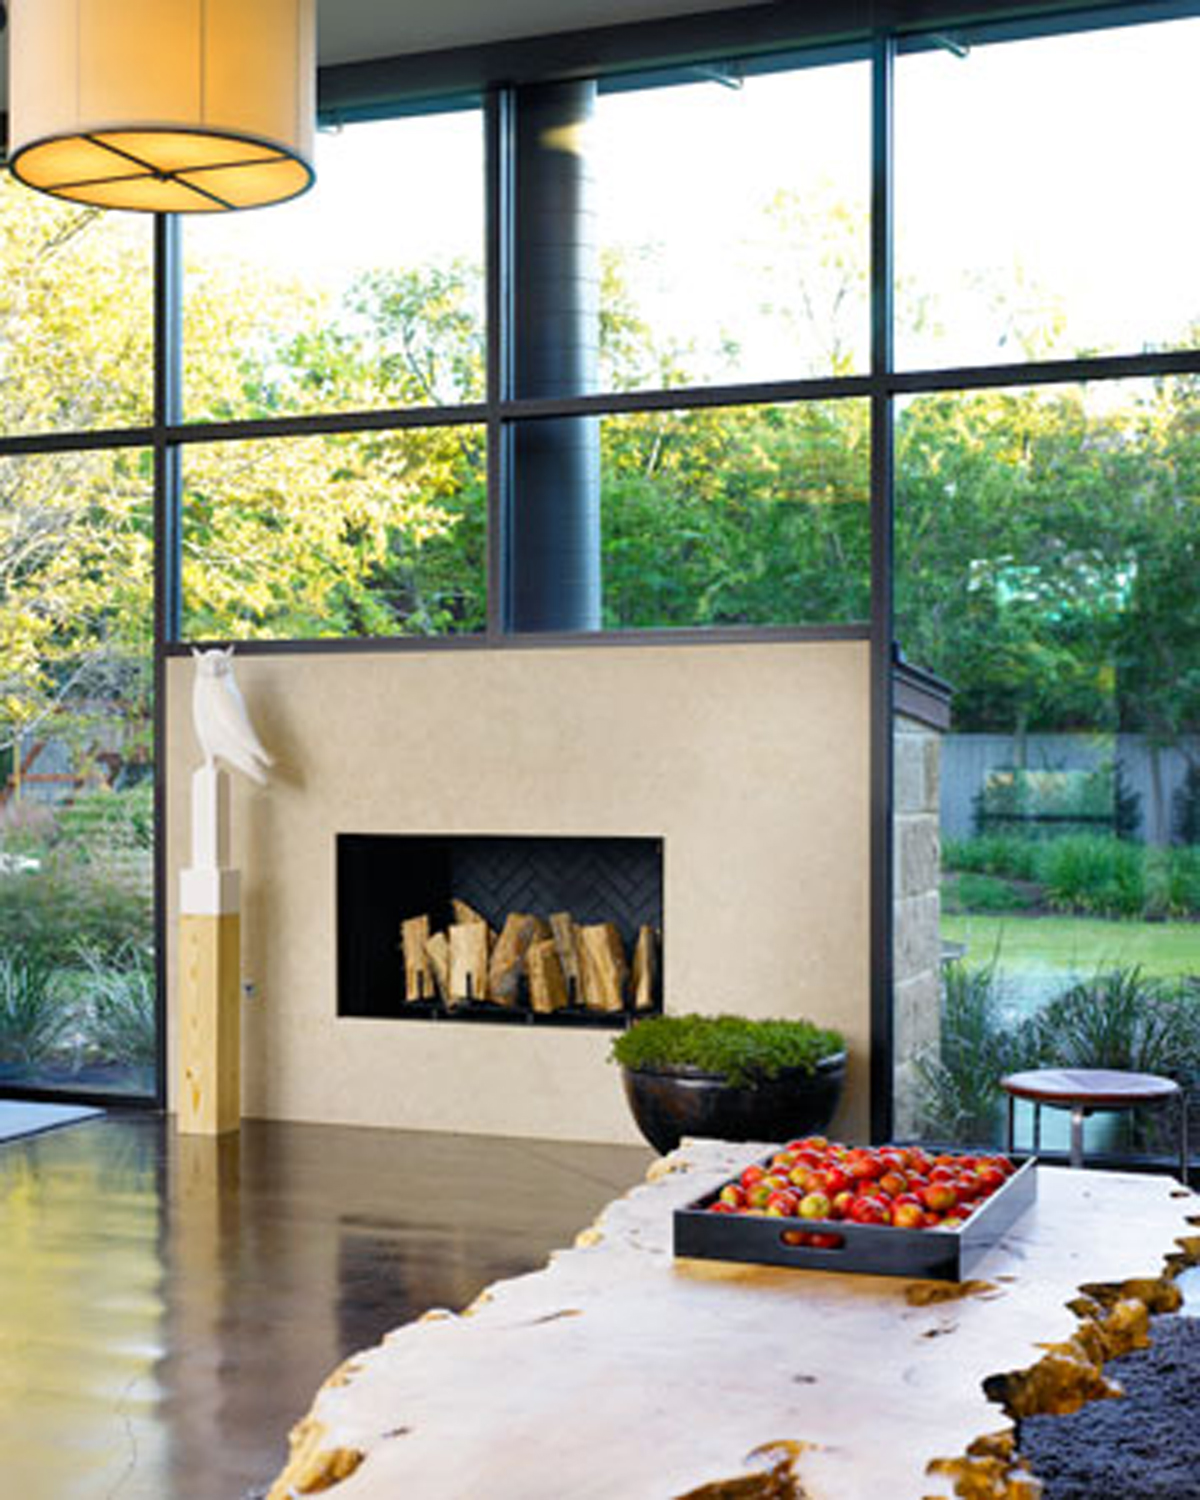 Modern interior design ideas from alice cottrell fireplace